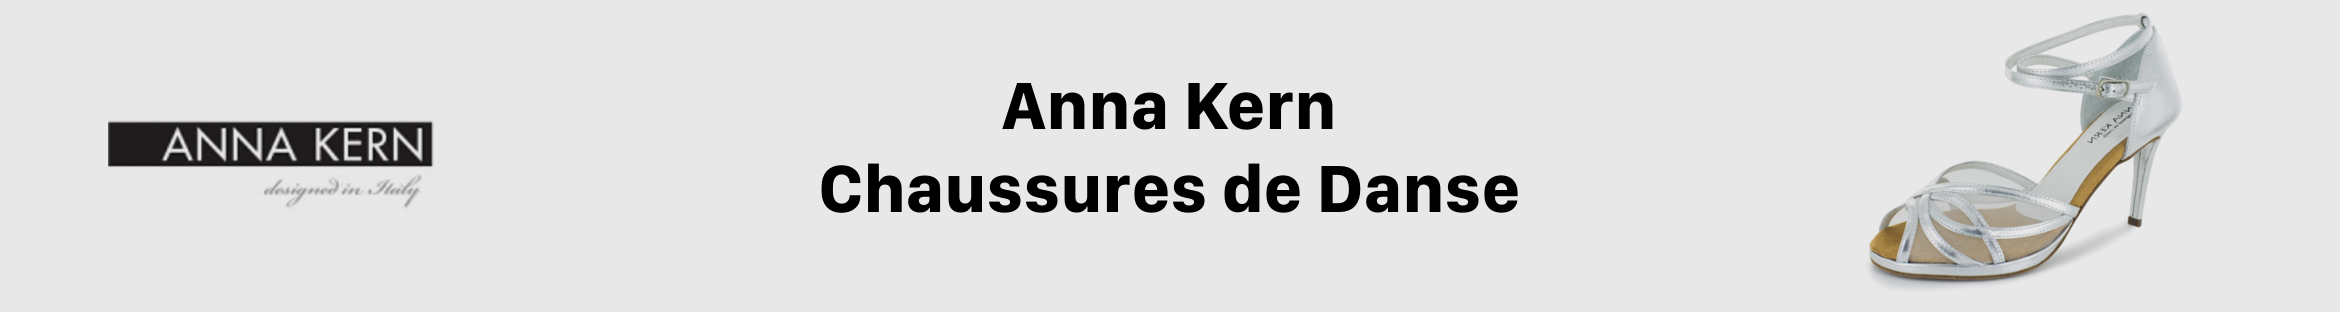 anna-kern-chaussures-danse.png